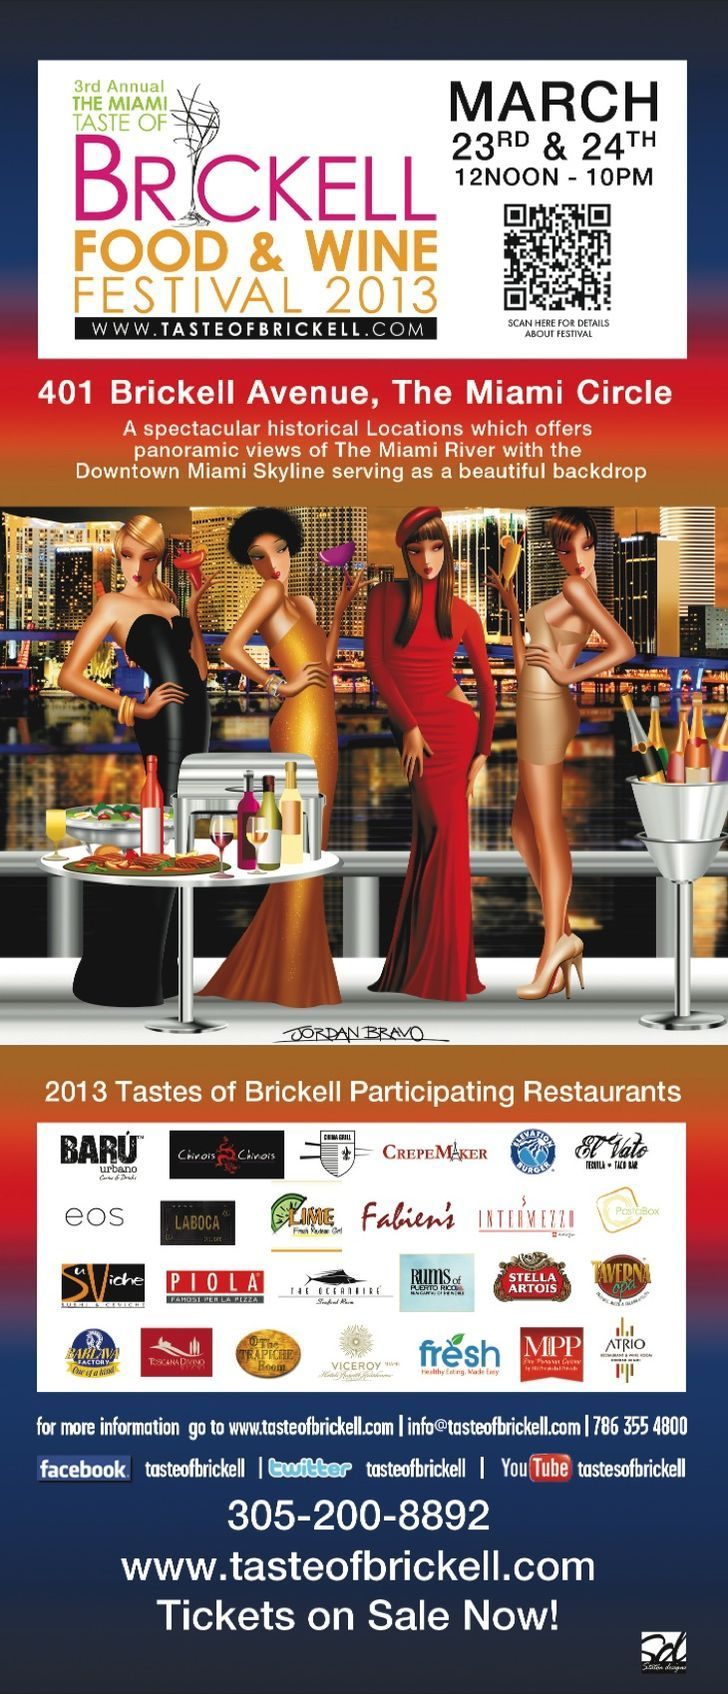 Taste of Brickell Food & Wine Festival